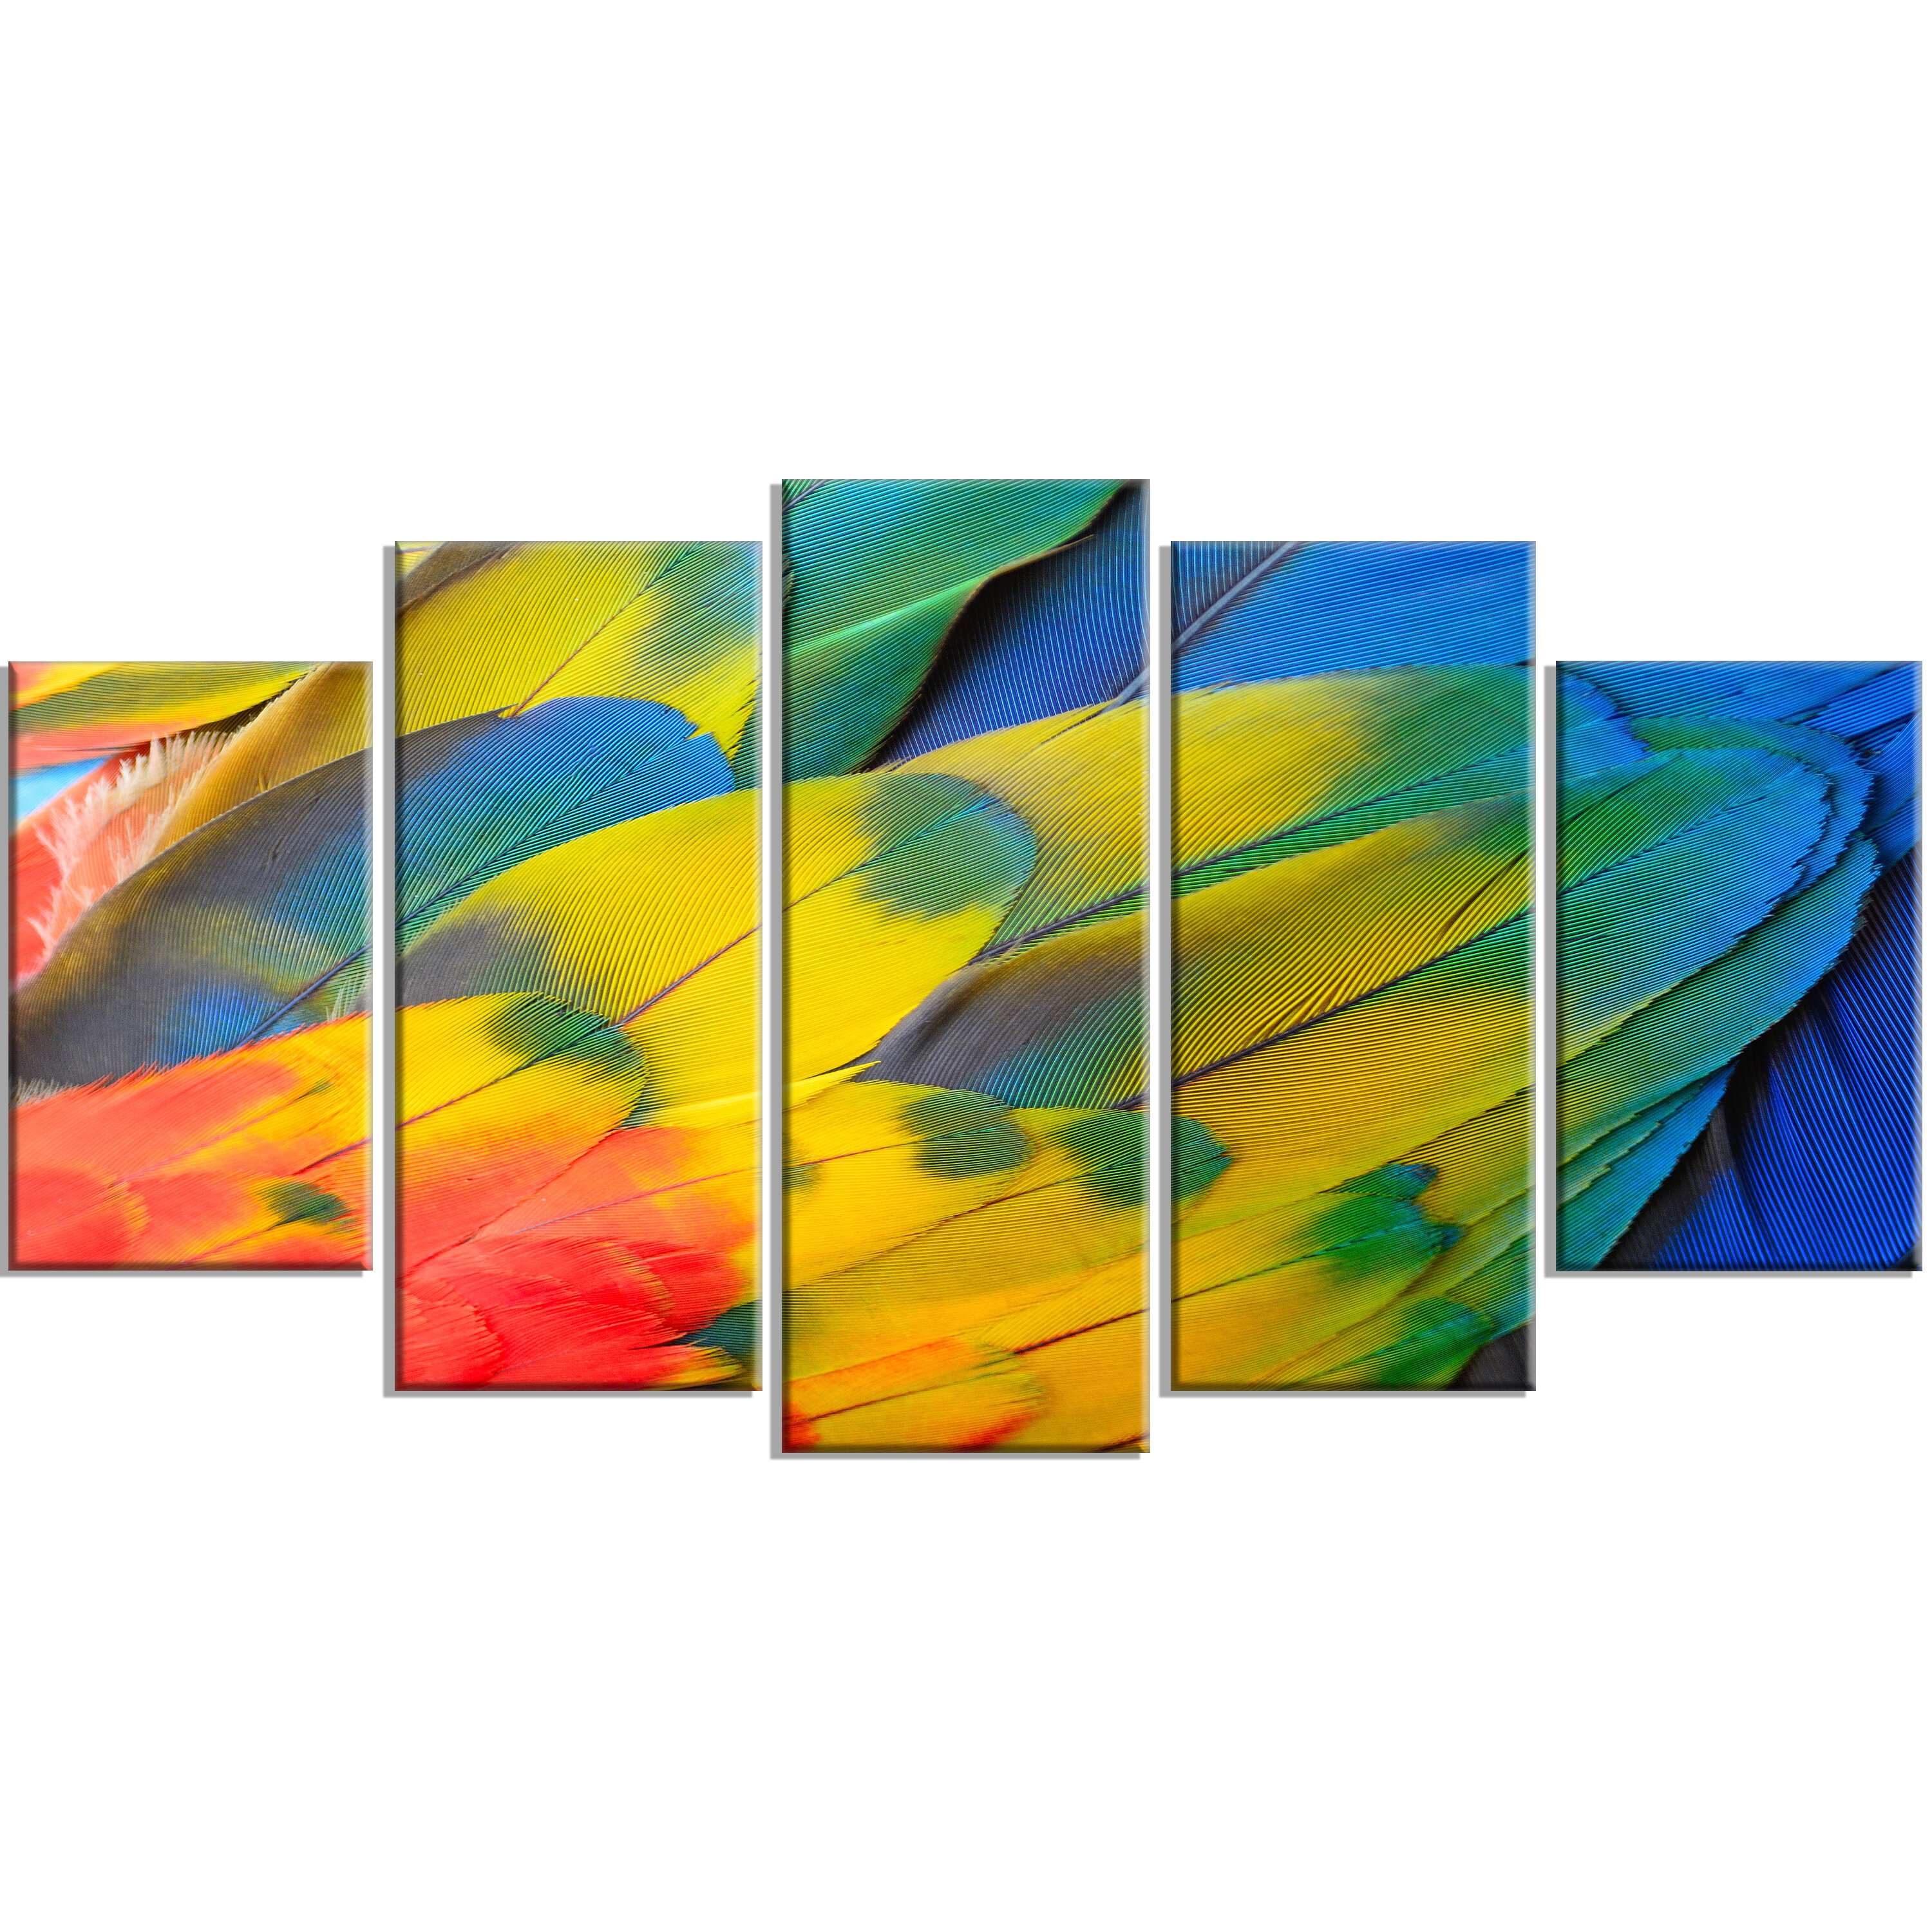 DesignArt \'Scarlet Macaw Feathers\' 5 Piece Wall Art on Wrapped ...